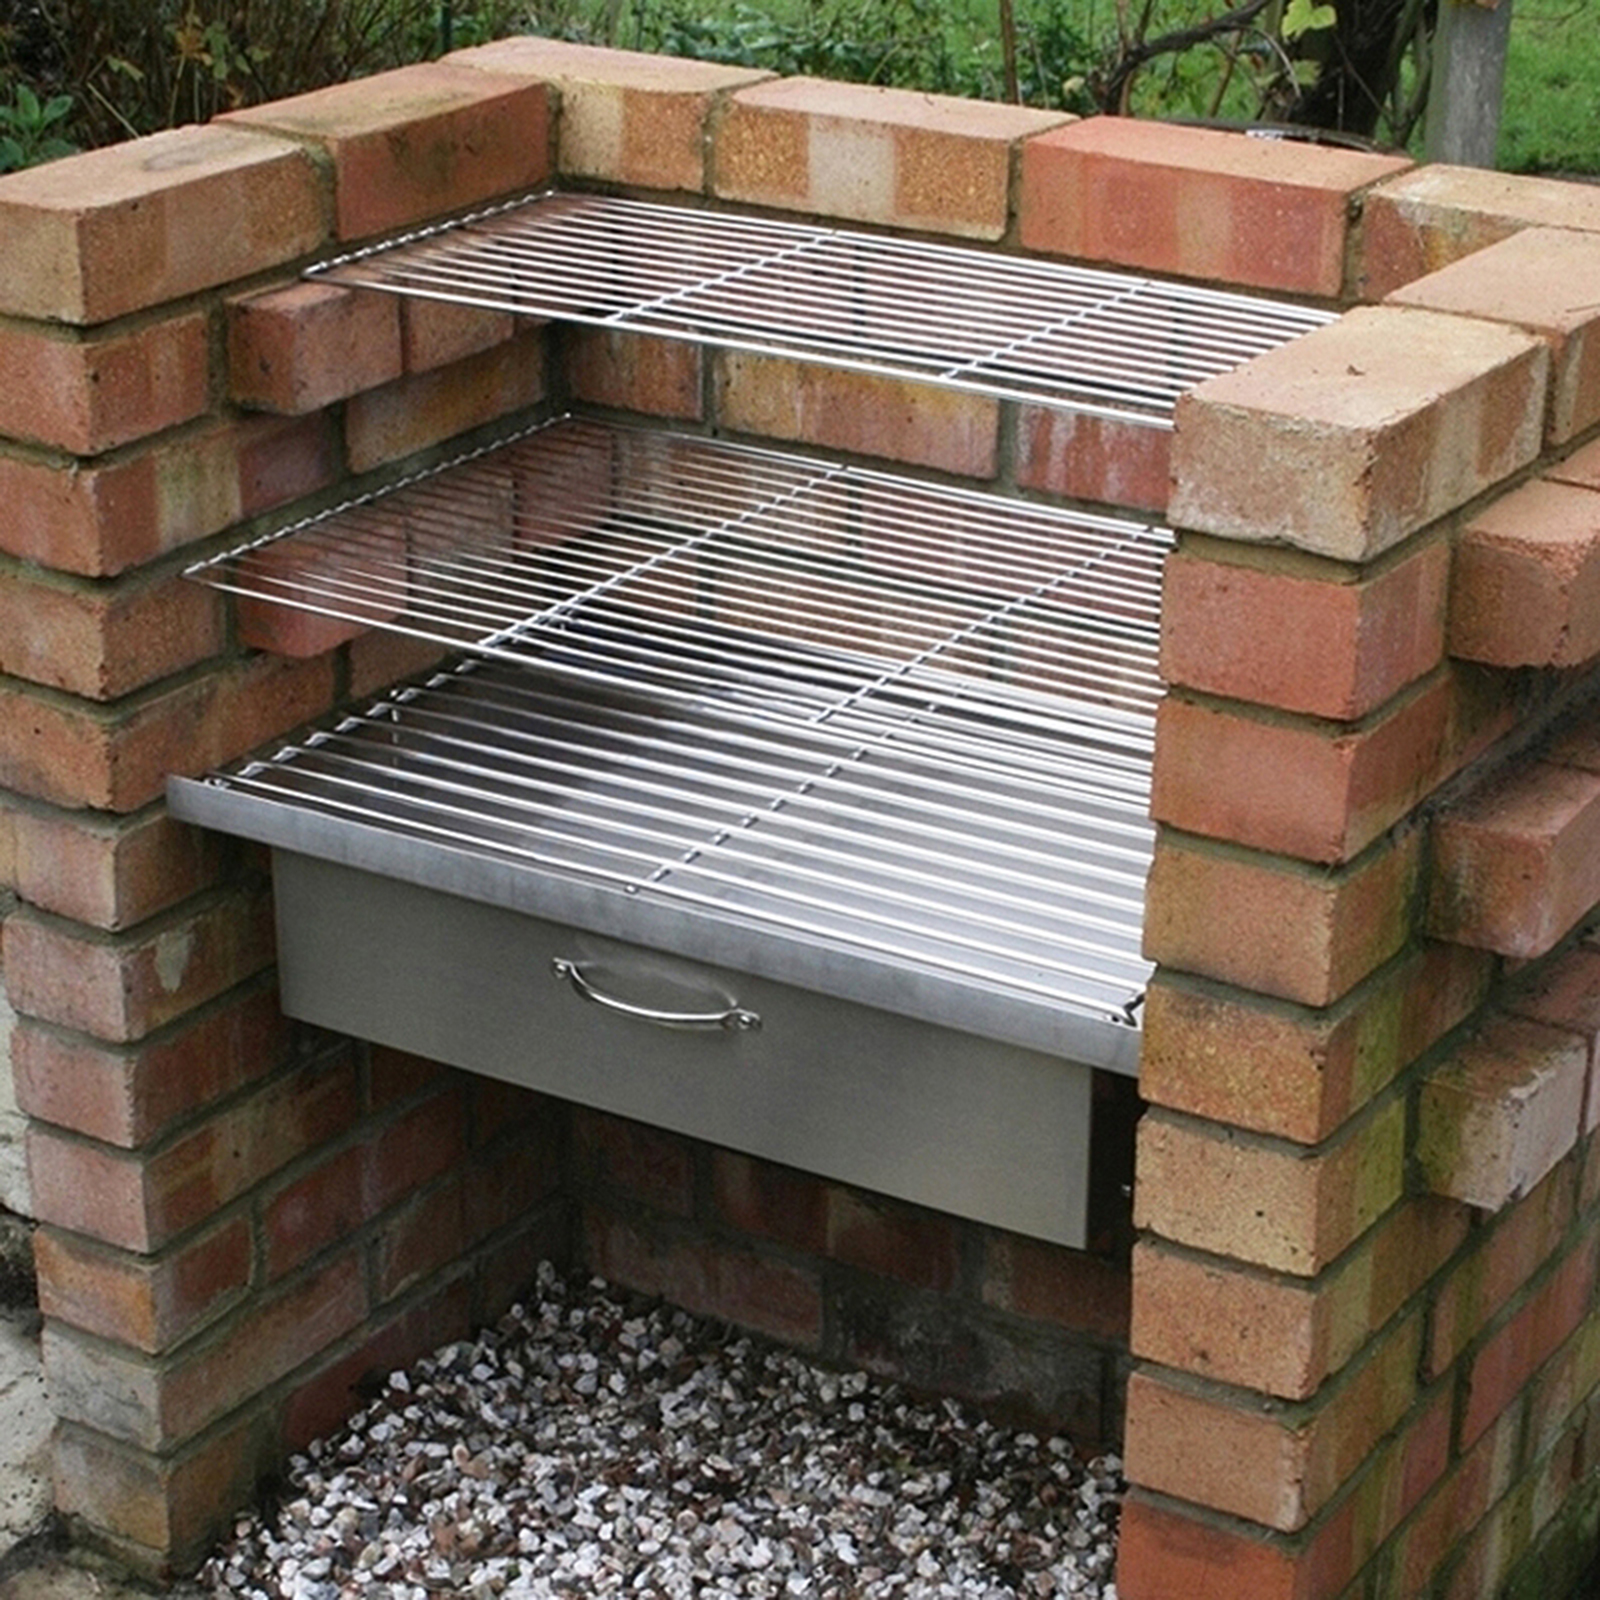 Diy Brick Bbq System Complete Set Grills Warming Draw